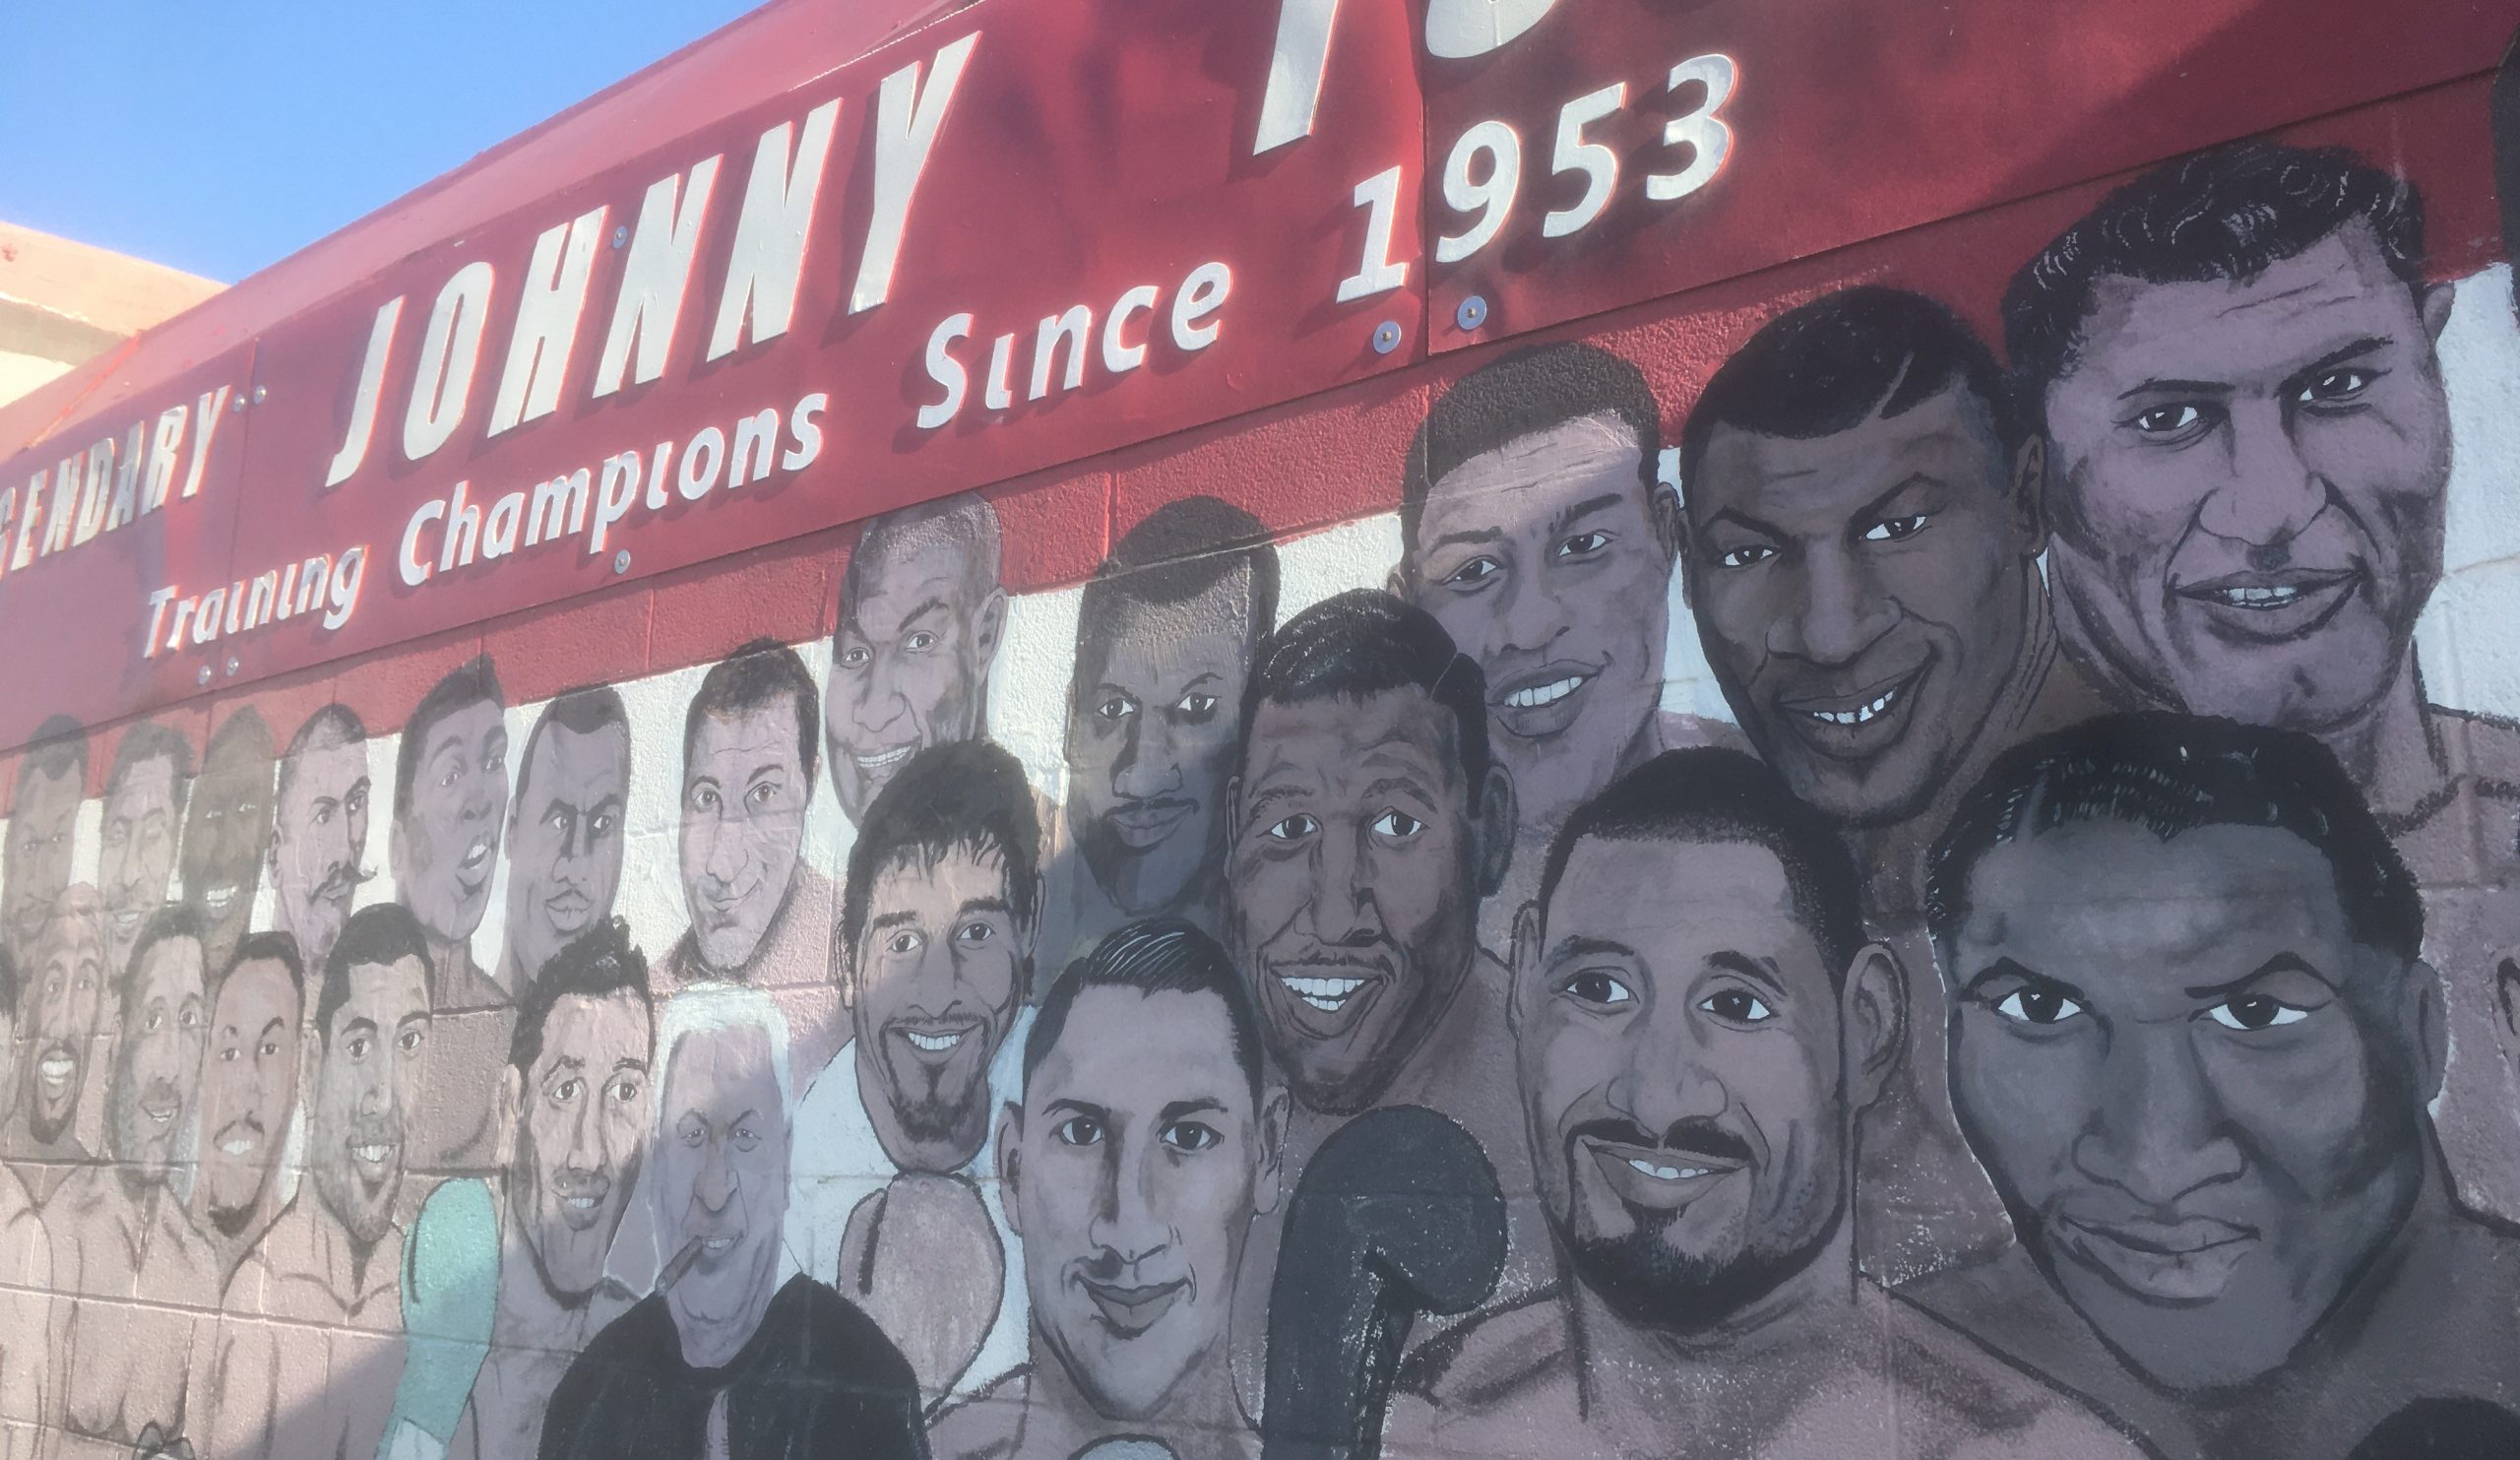 Johnny Tocco's Boxing School Las Vegas 2021, Johnny Tocco's Ringside Gym 2021